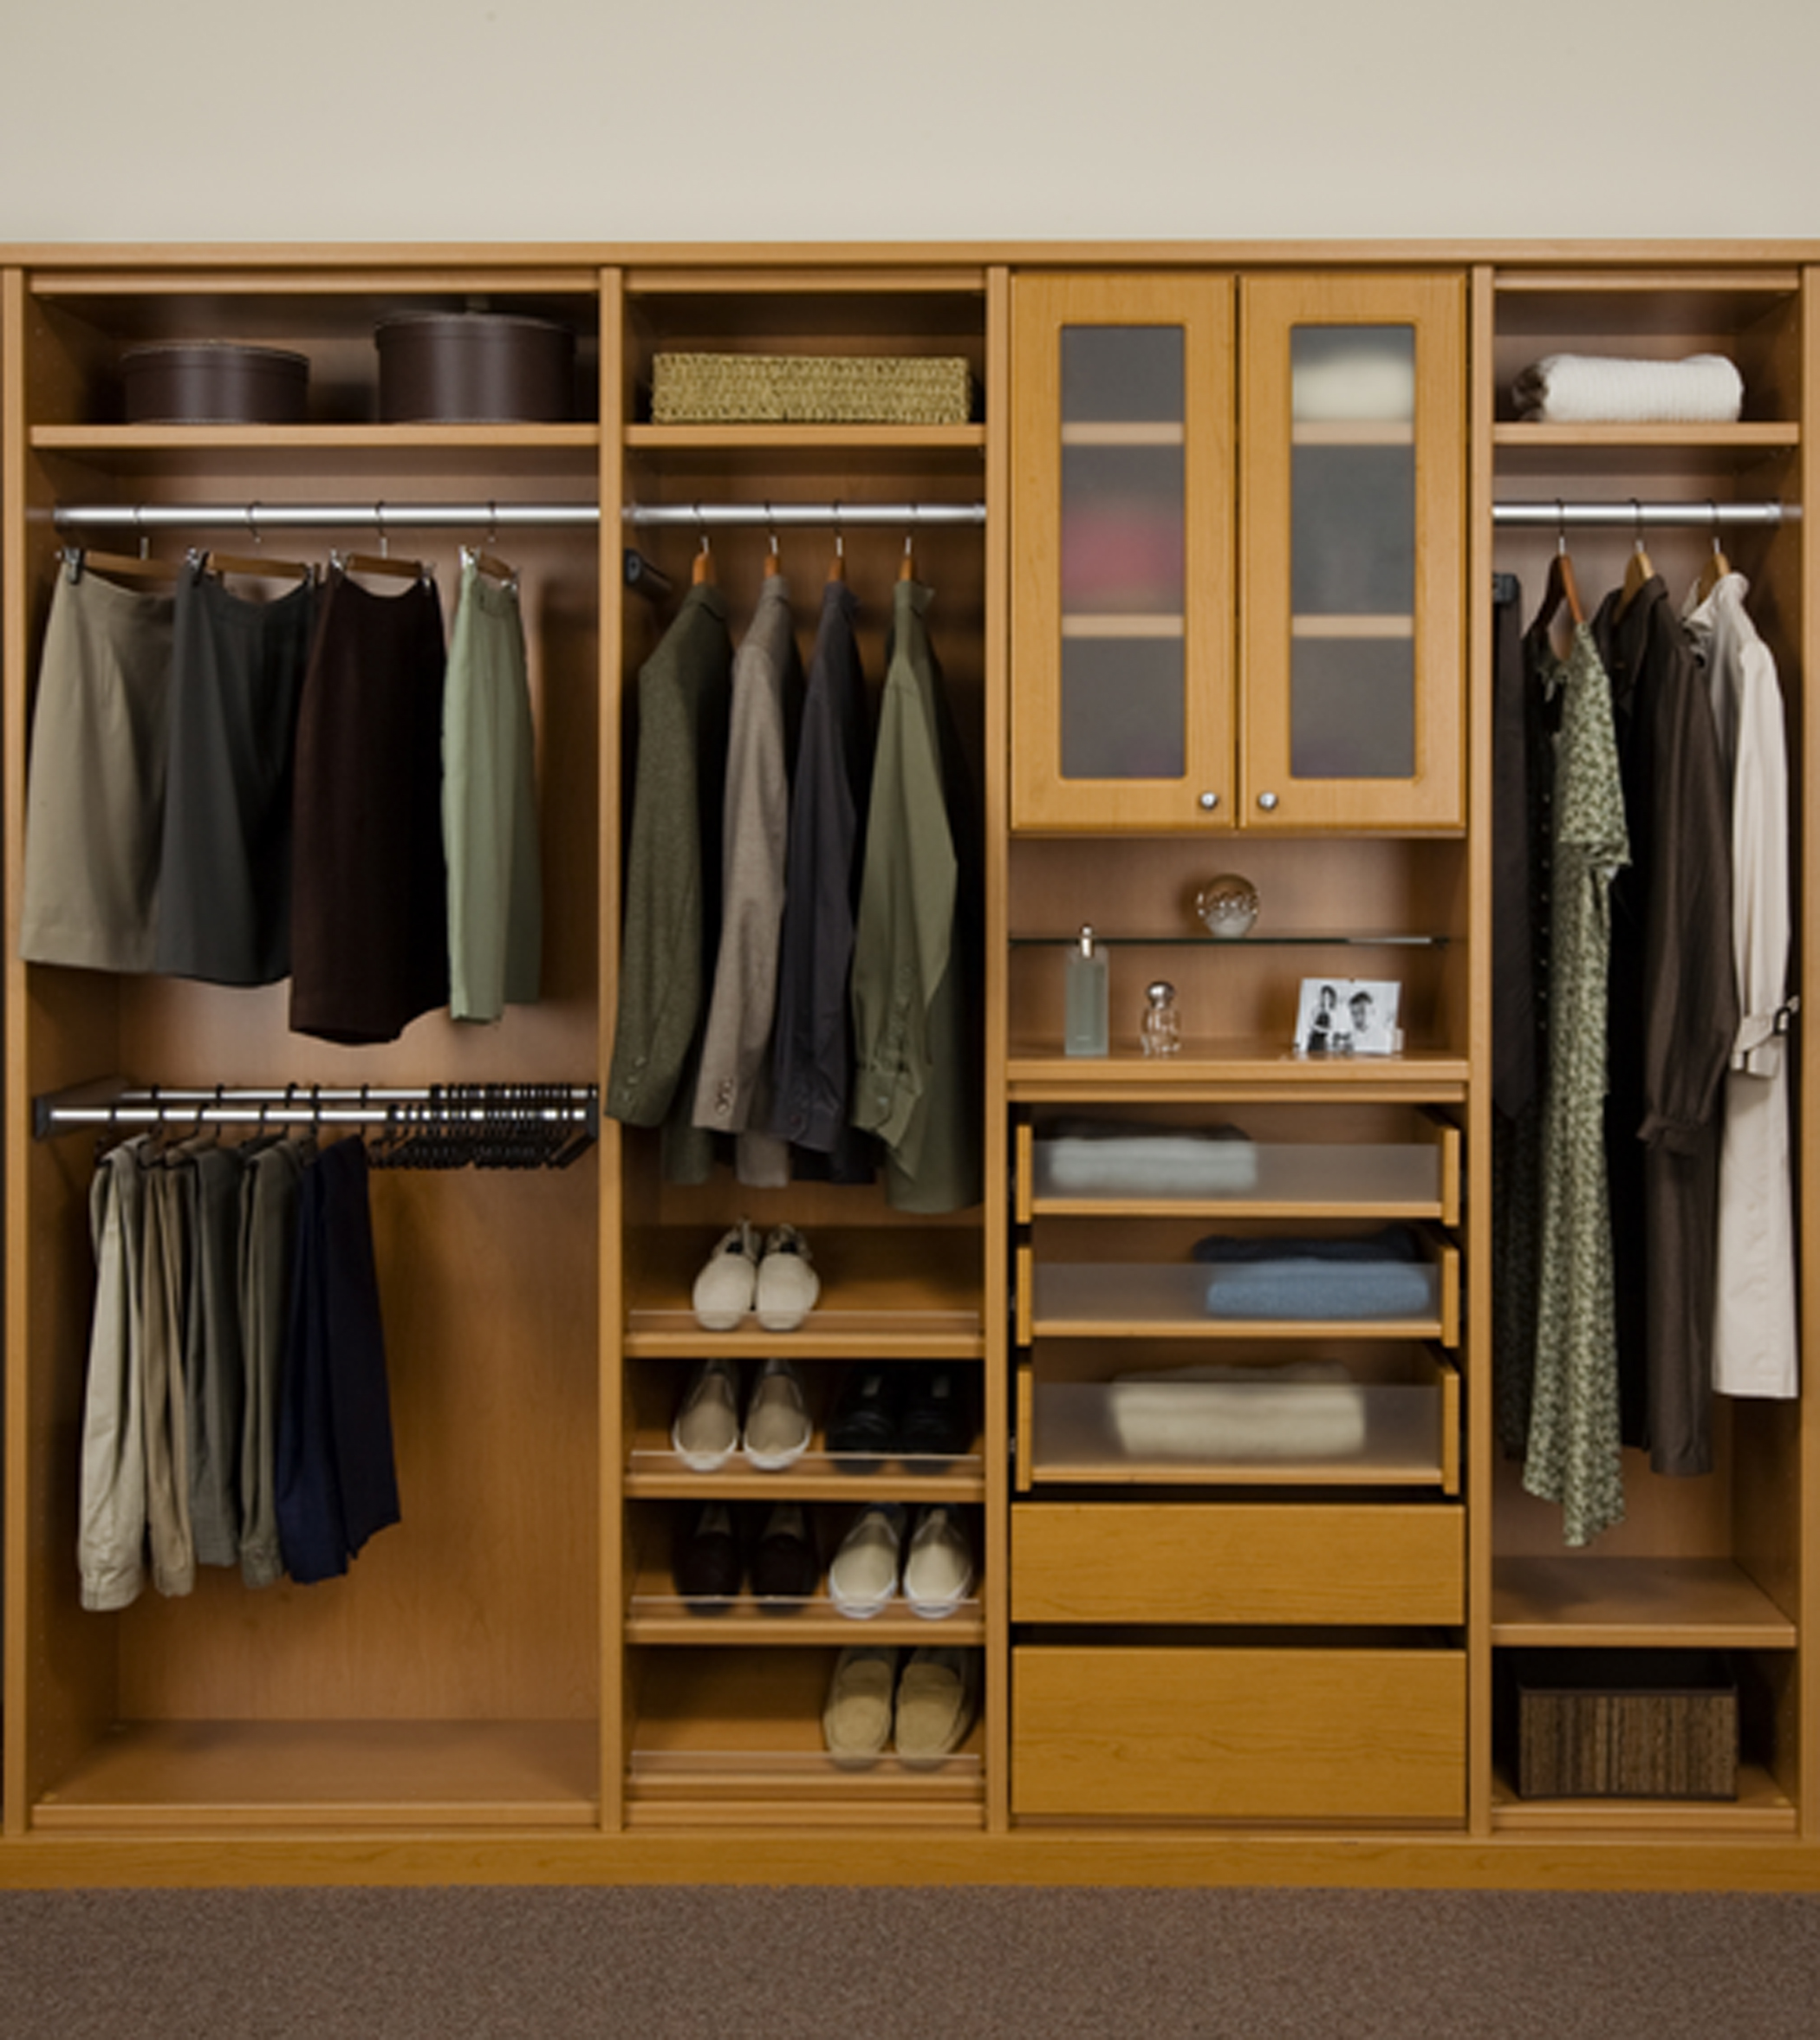 IKEA Closet Organizer Ideas (Image 8 of 10)